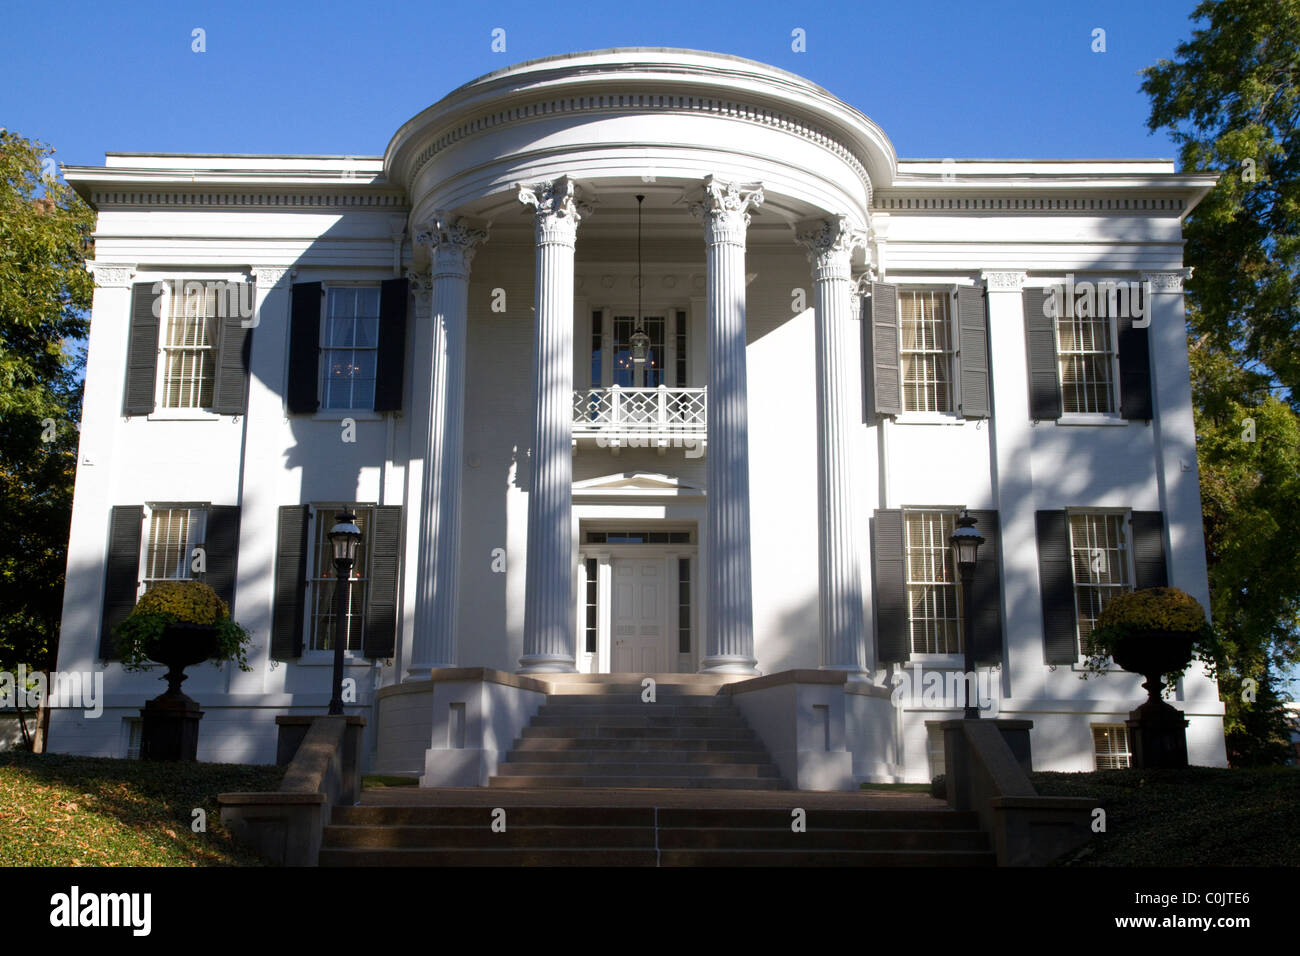 The Mississippi Governor's Mansion in Jackson, Mississippi, USA. - Stock Image